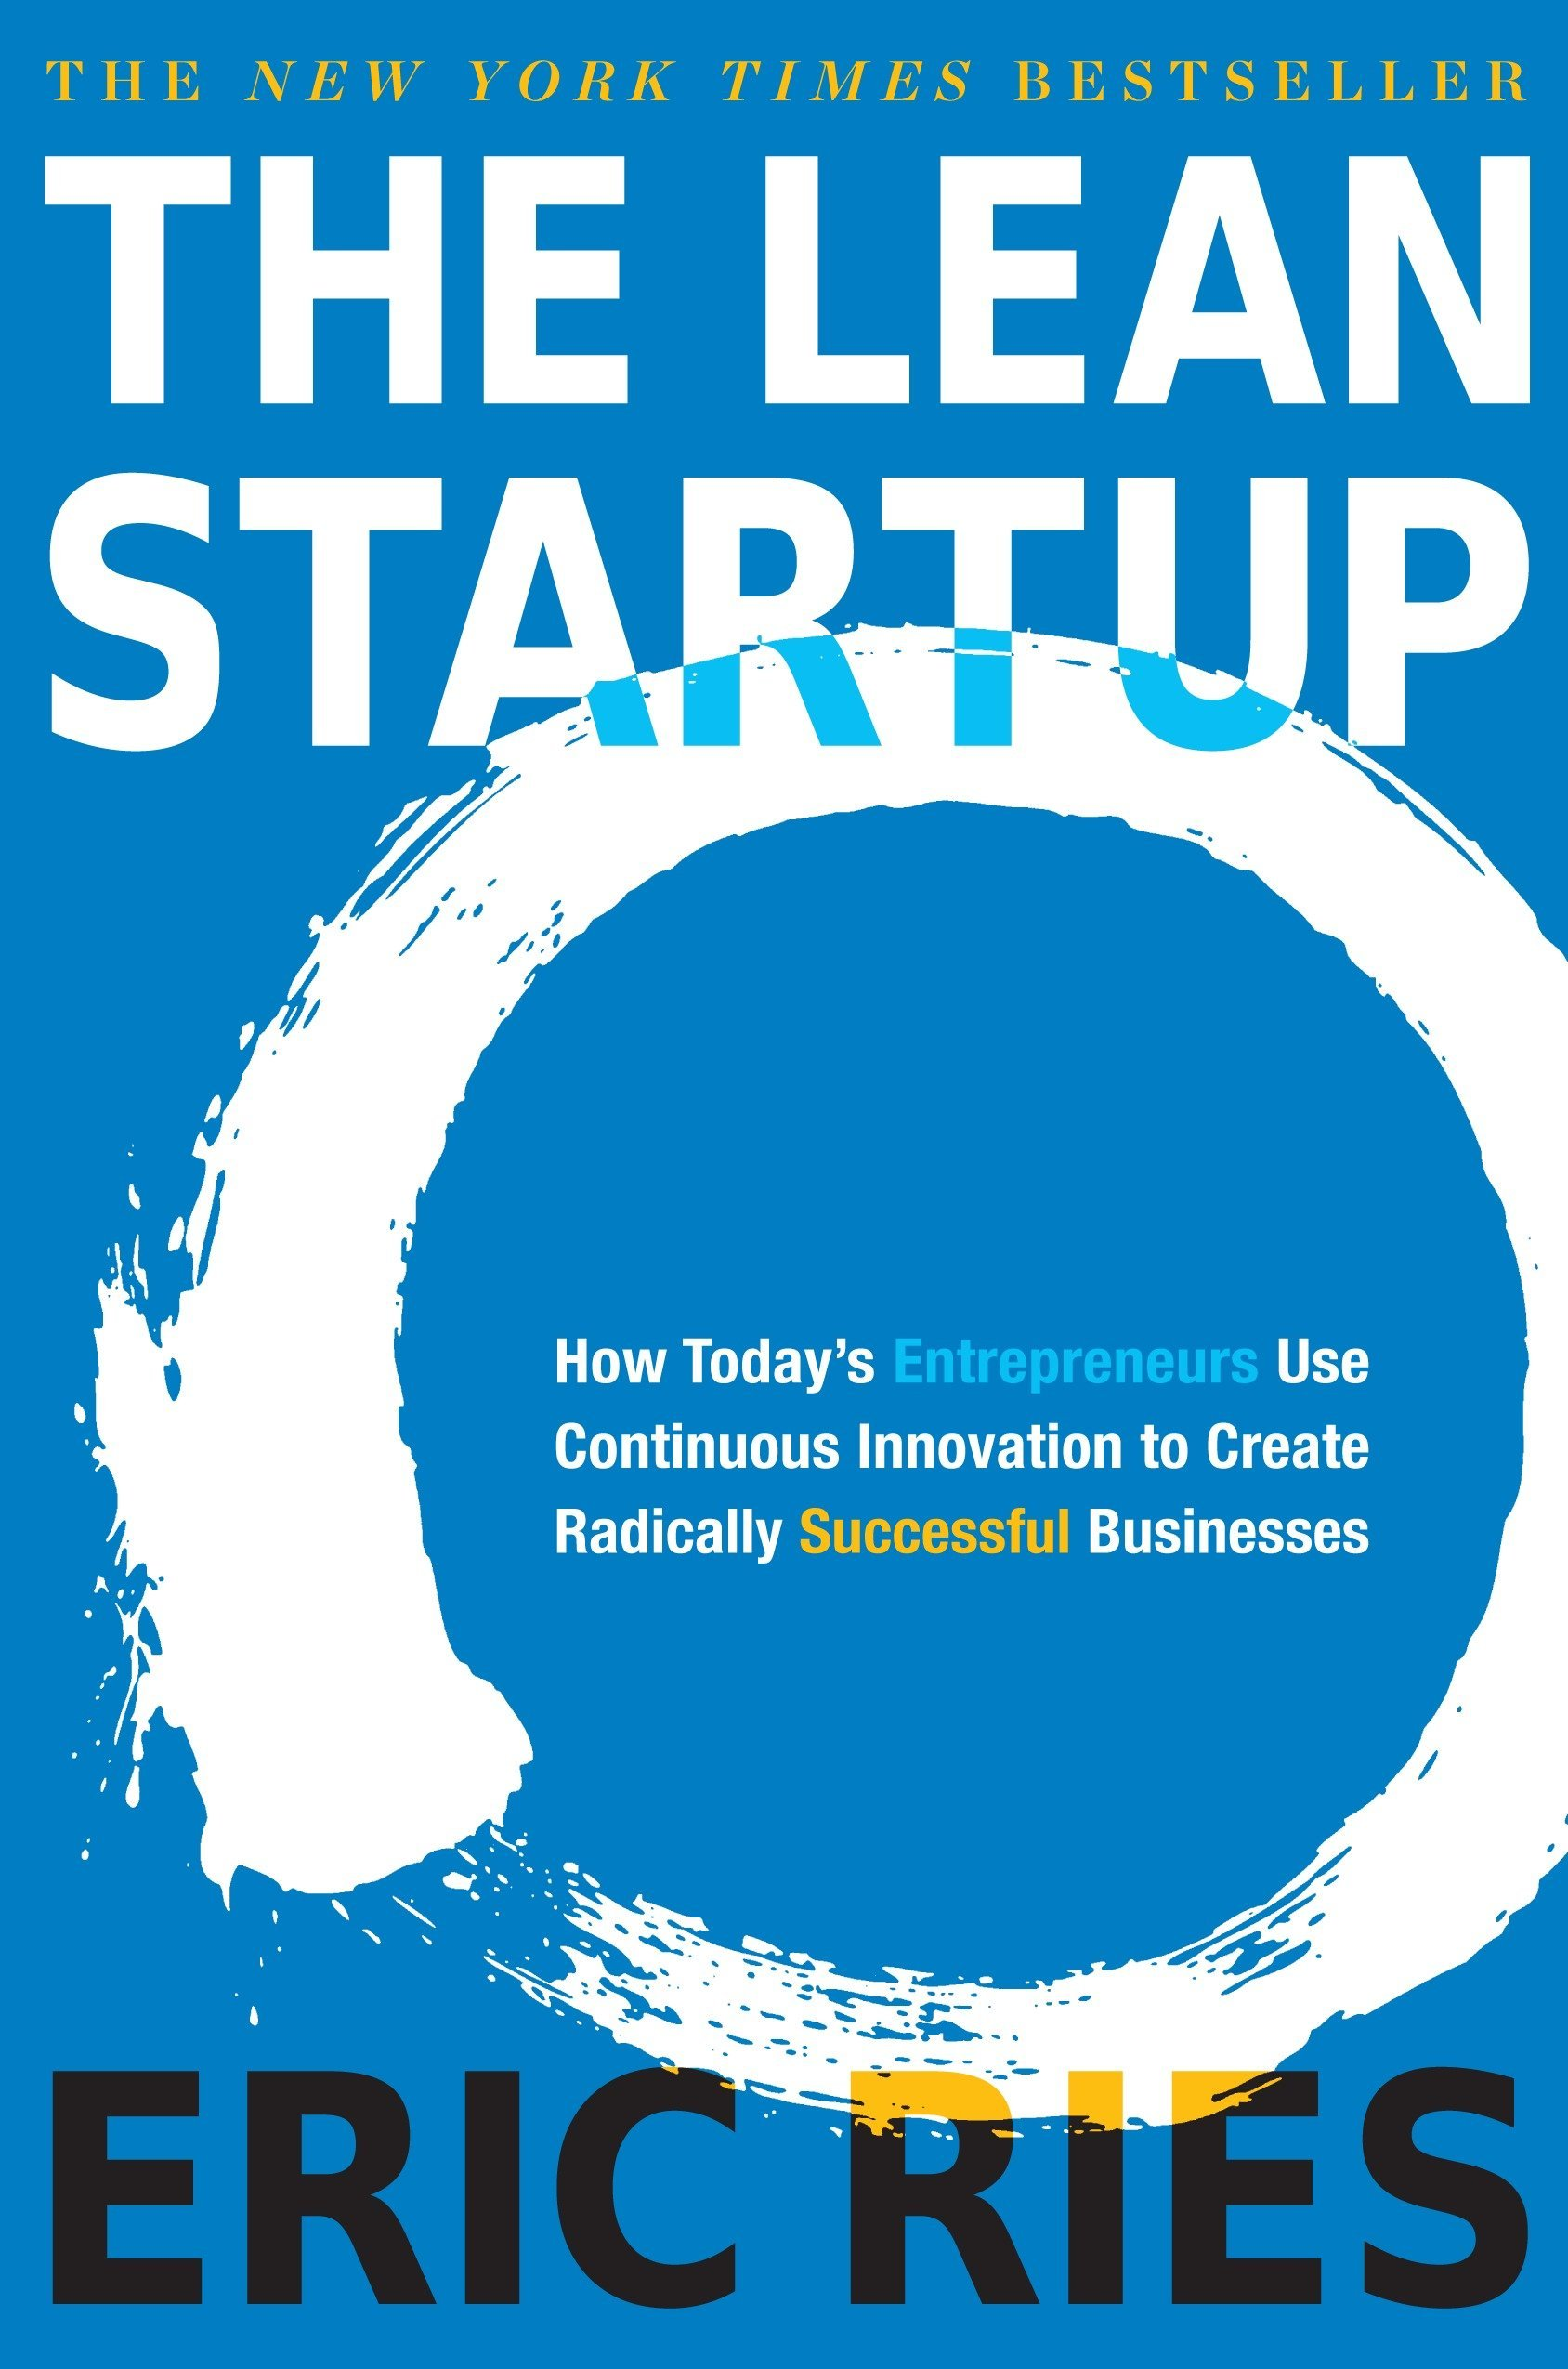 The Lean Startup: How Today's Entrepreneurs Use Continuous Innovation to Create Radically Successful Businesses - Eric Ries The Lean Startup: How Today's Entrepreneurs Use Continuous Innovation to Create Radically Successful Businesses - Eric Ries - quote